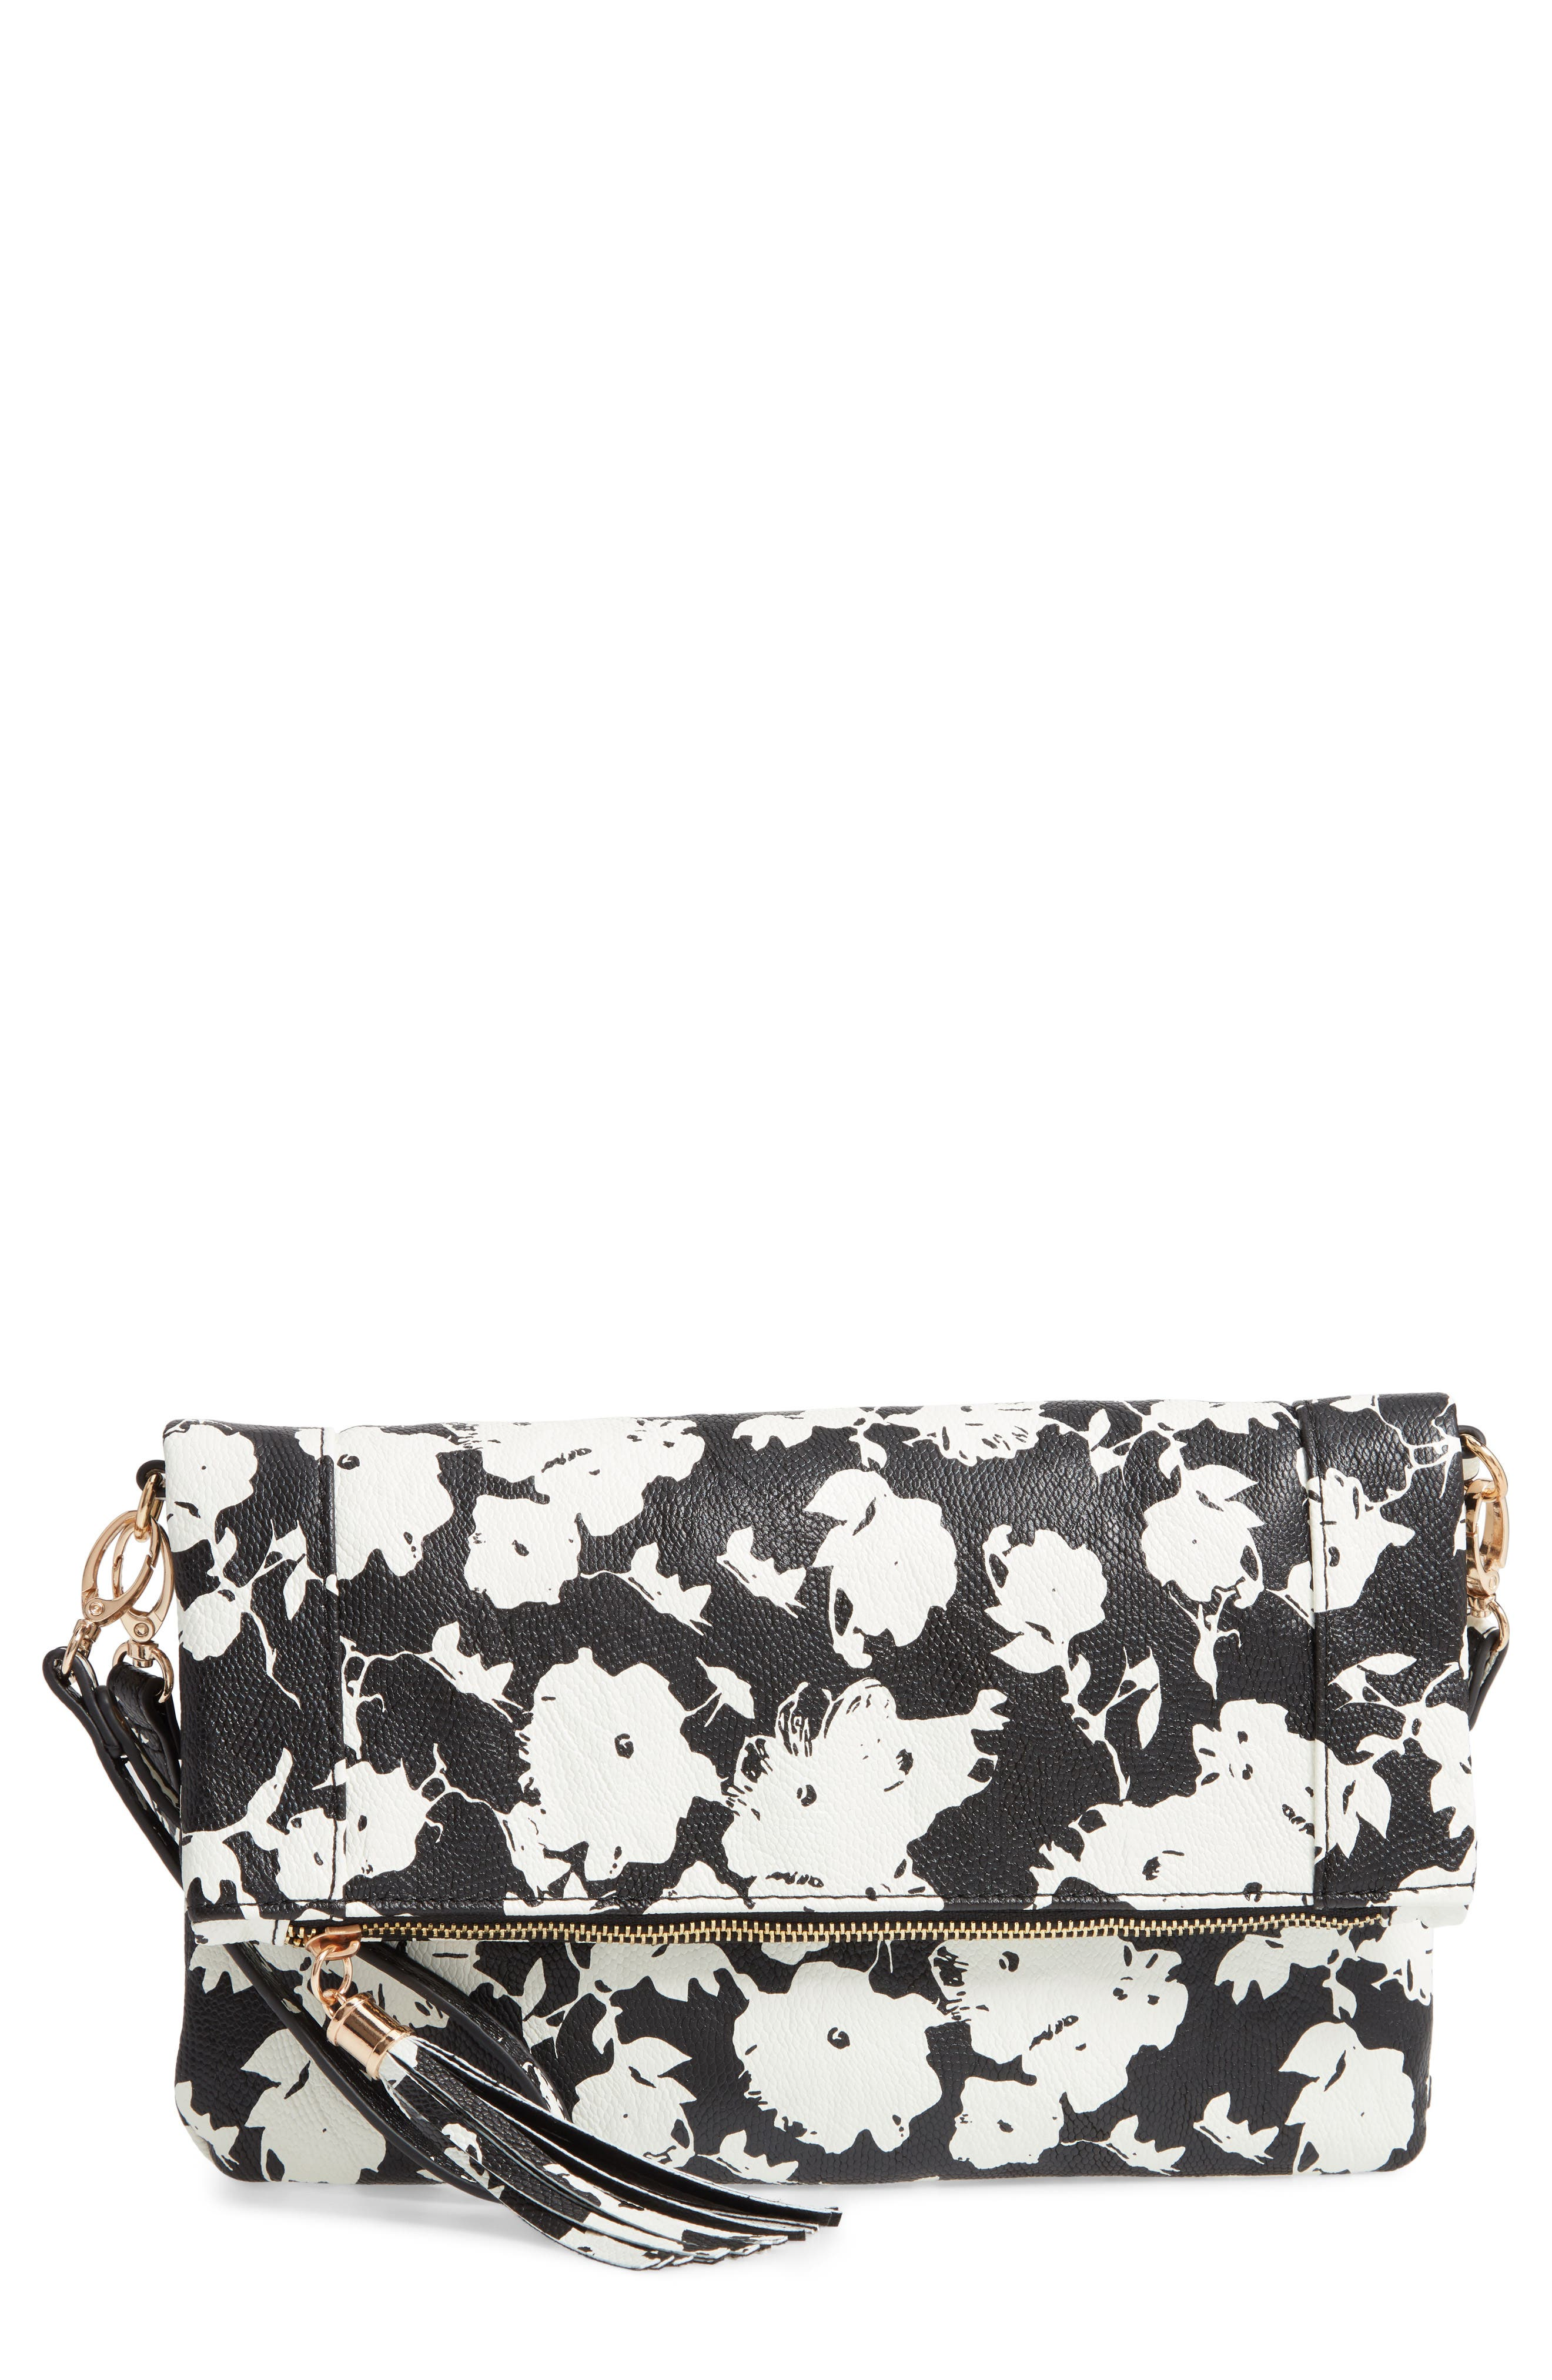 SOLE SOCIETY 'Tasia' Print Foldover Clutch, Main, color, BLACK FLORAL